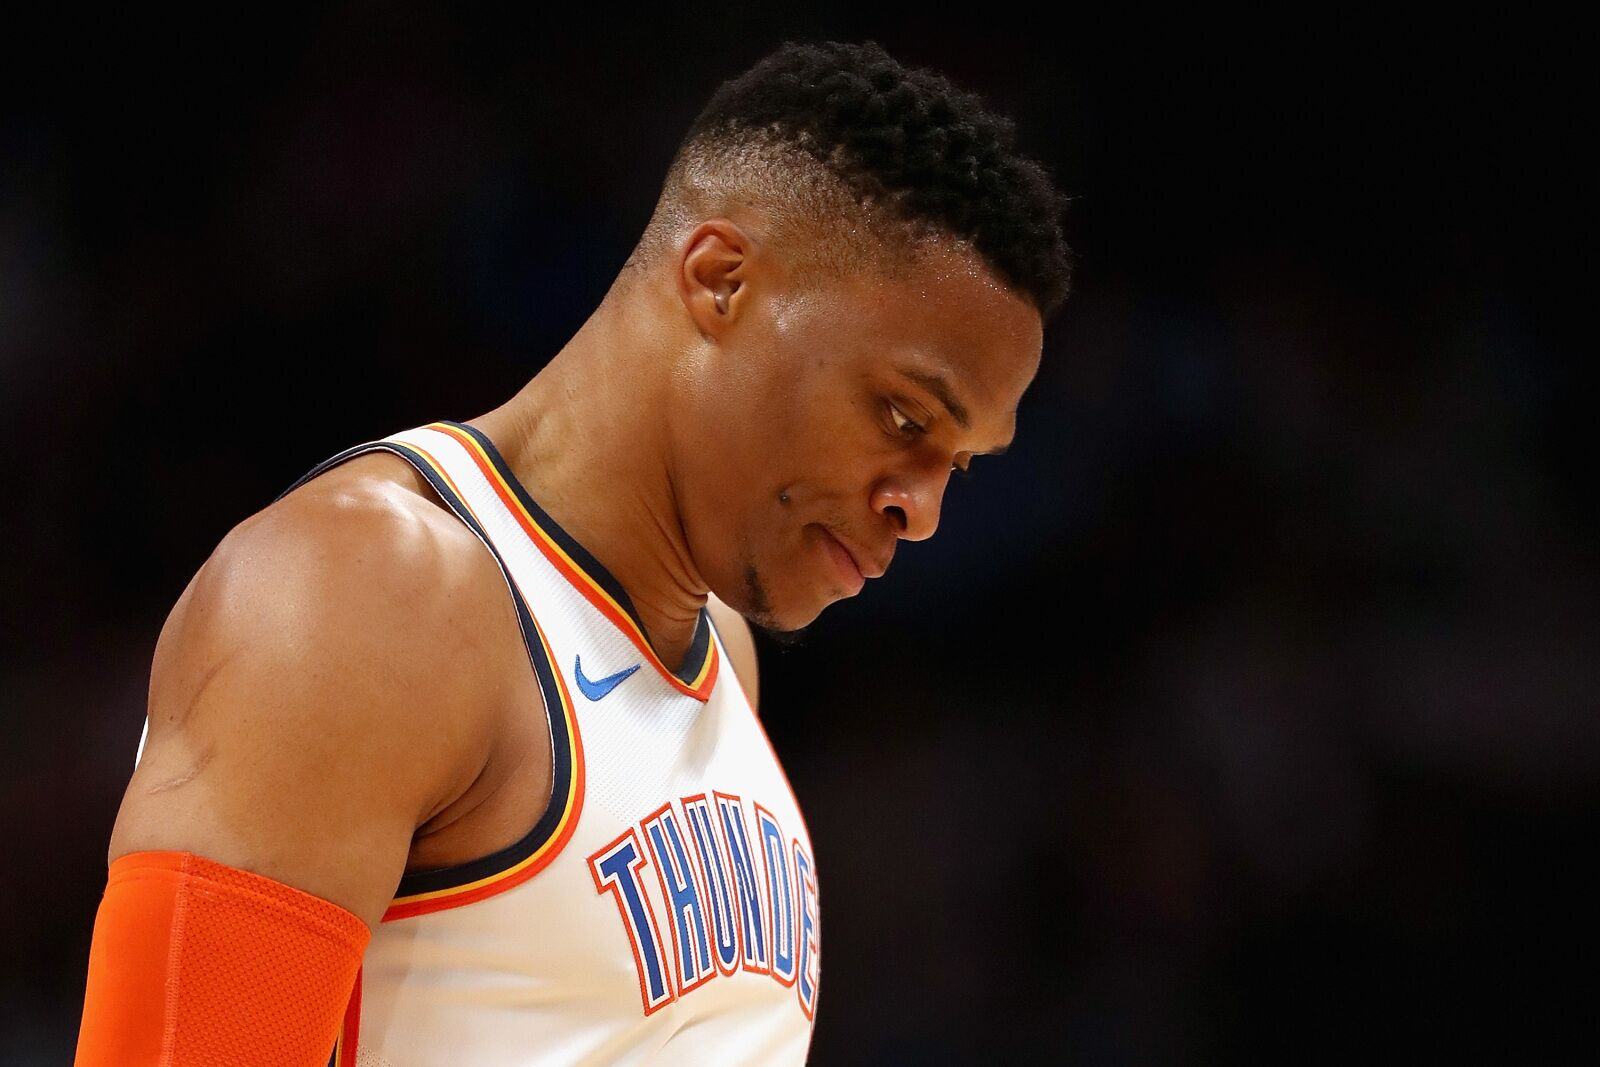 Nylon Calculus: Is Westbrook struggling because he's already peaked?